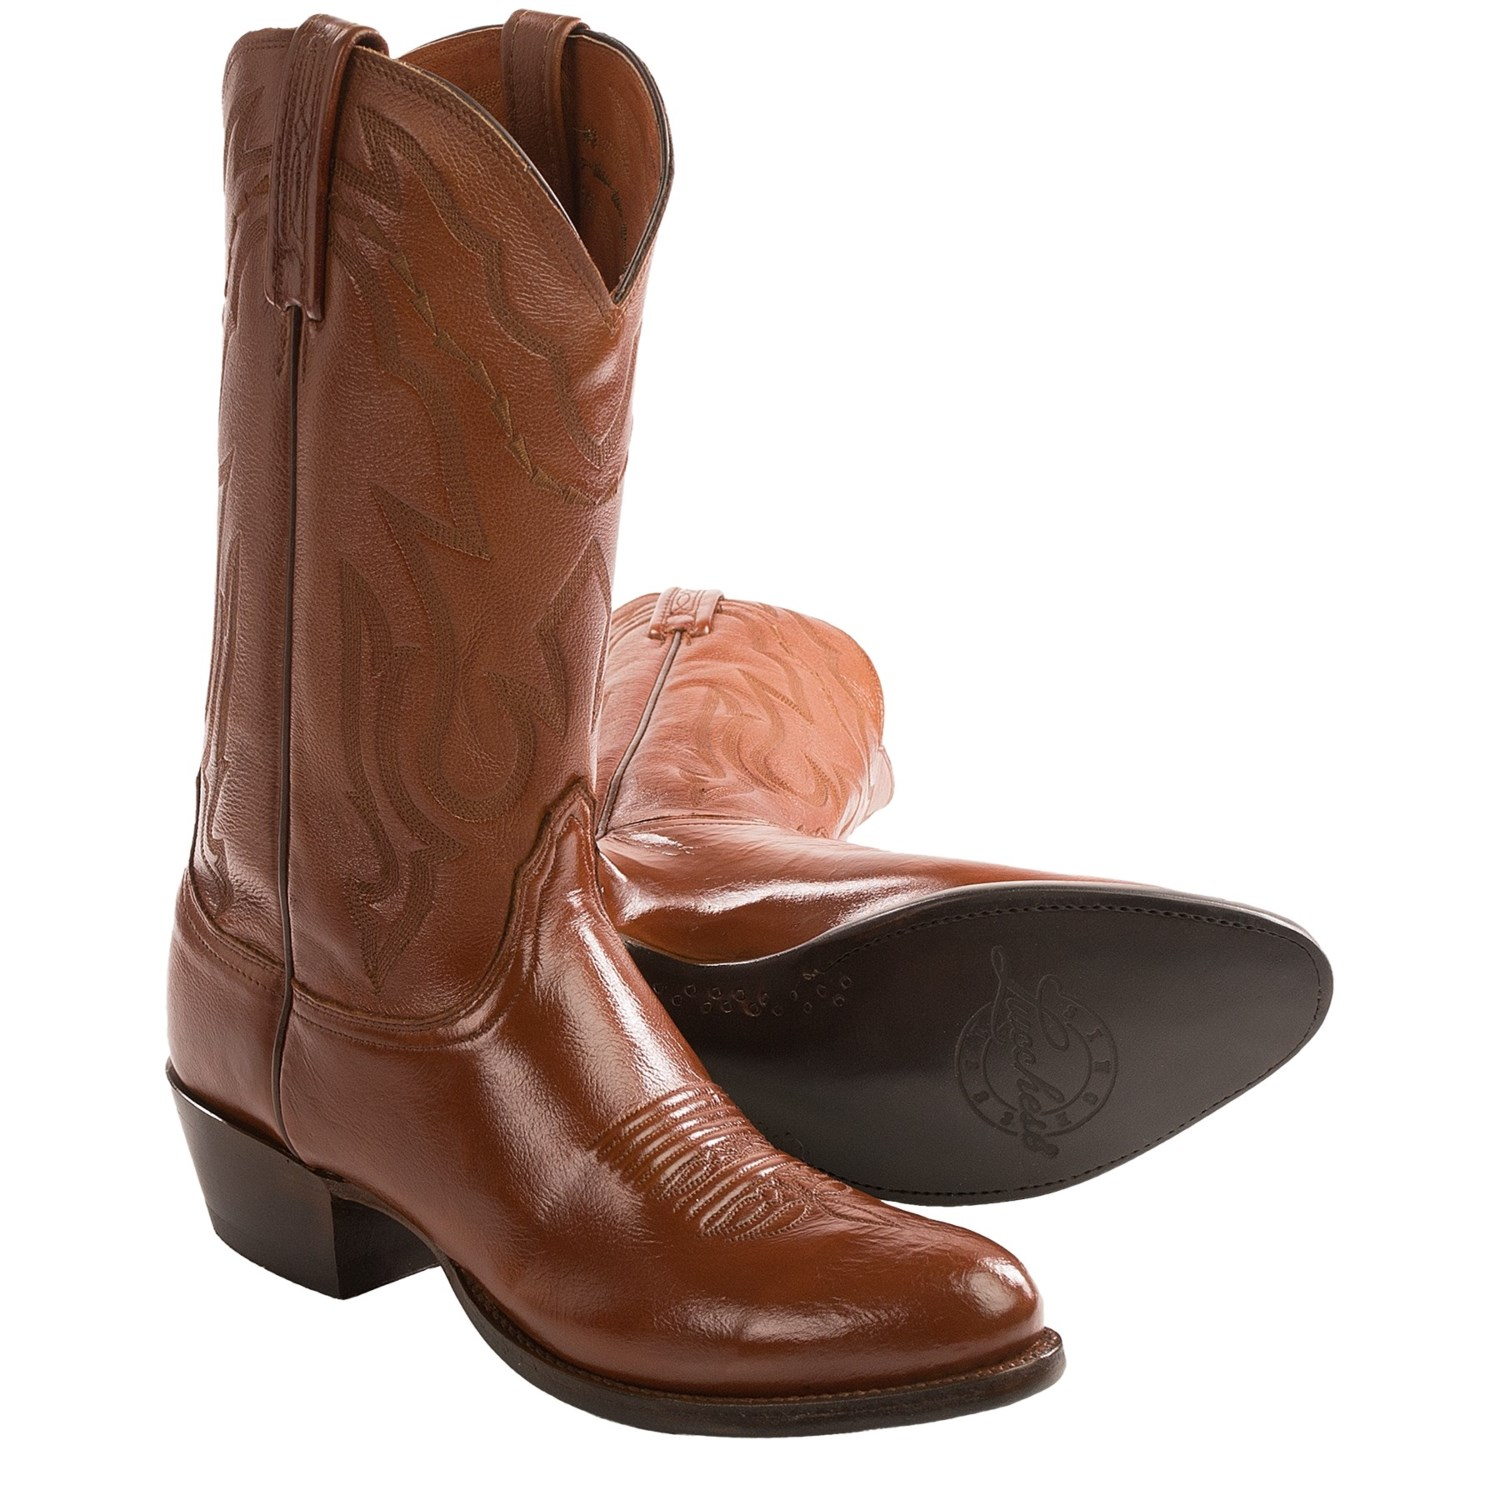 Lucchese Mens Boots Clearance Images Kg Mens Shoes Sale Images Brands Ideas